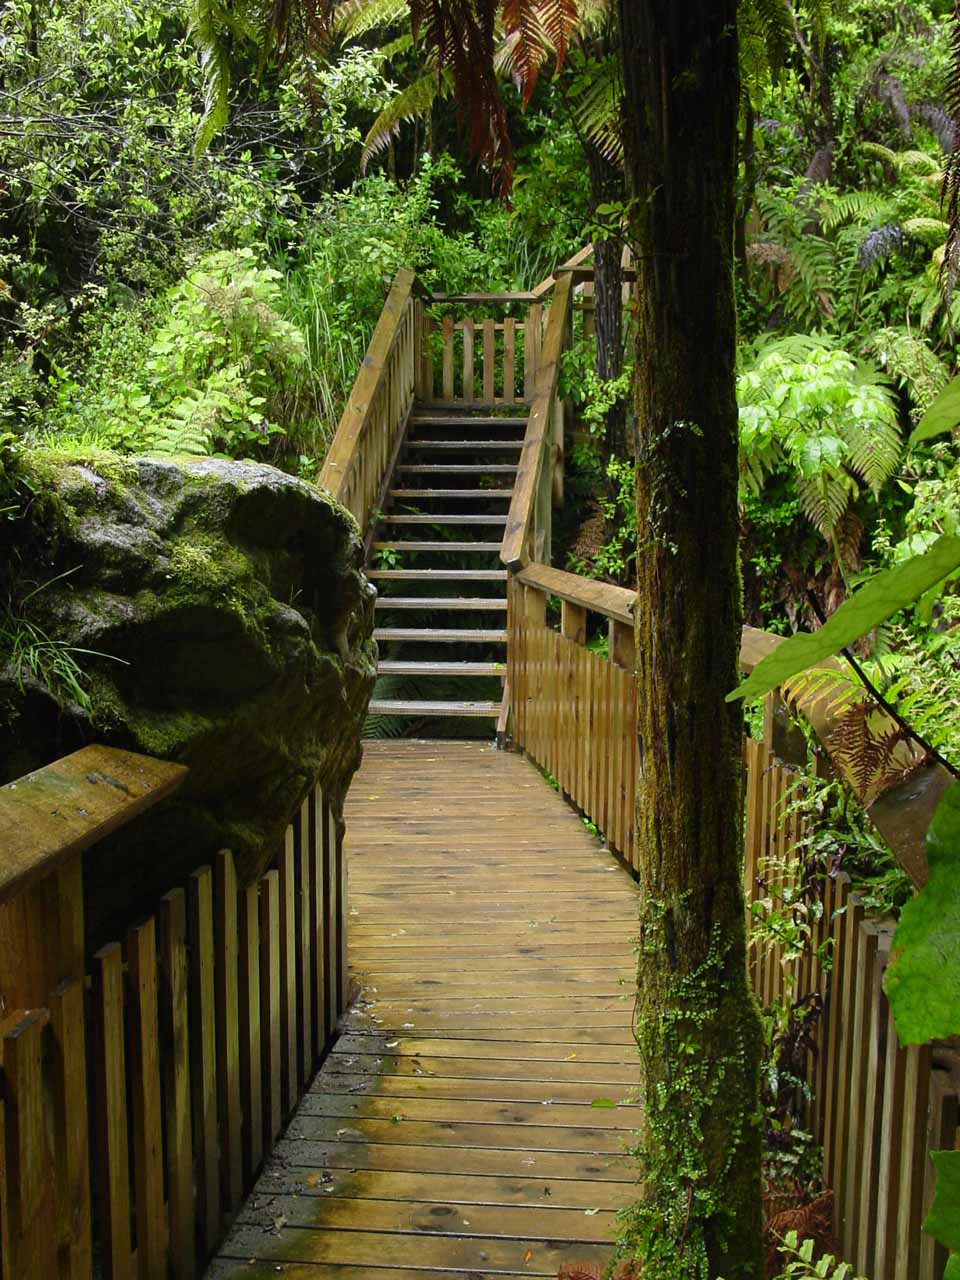 Looking back at the wooden boardwalk that took us close to Te Wairoa Falls